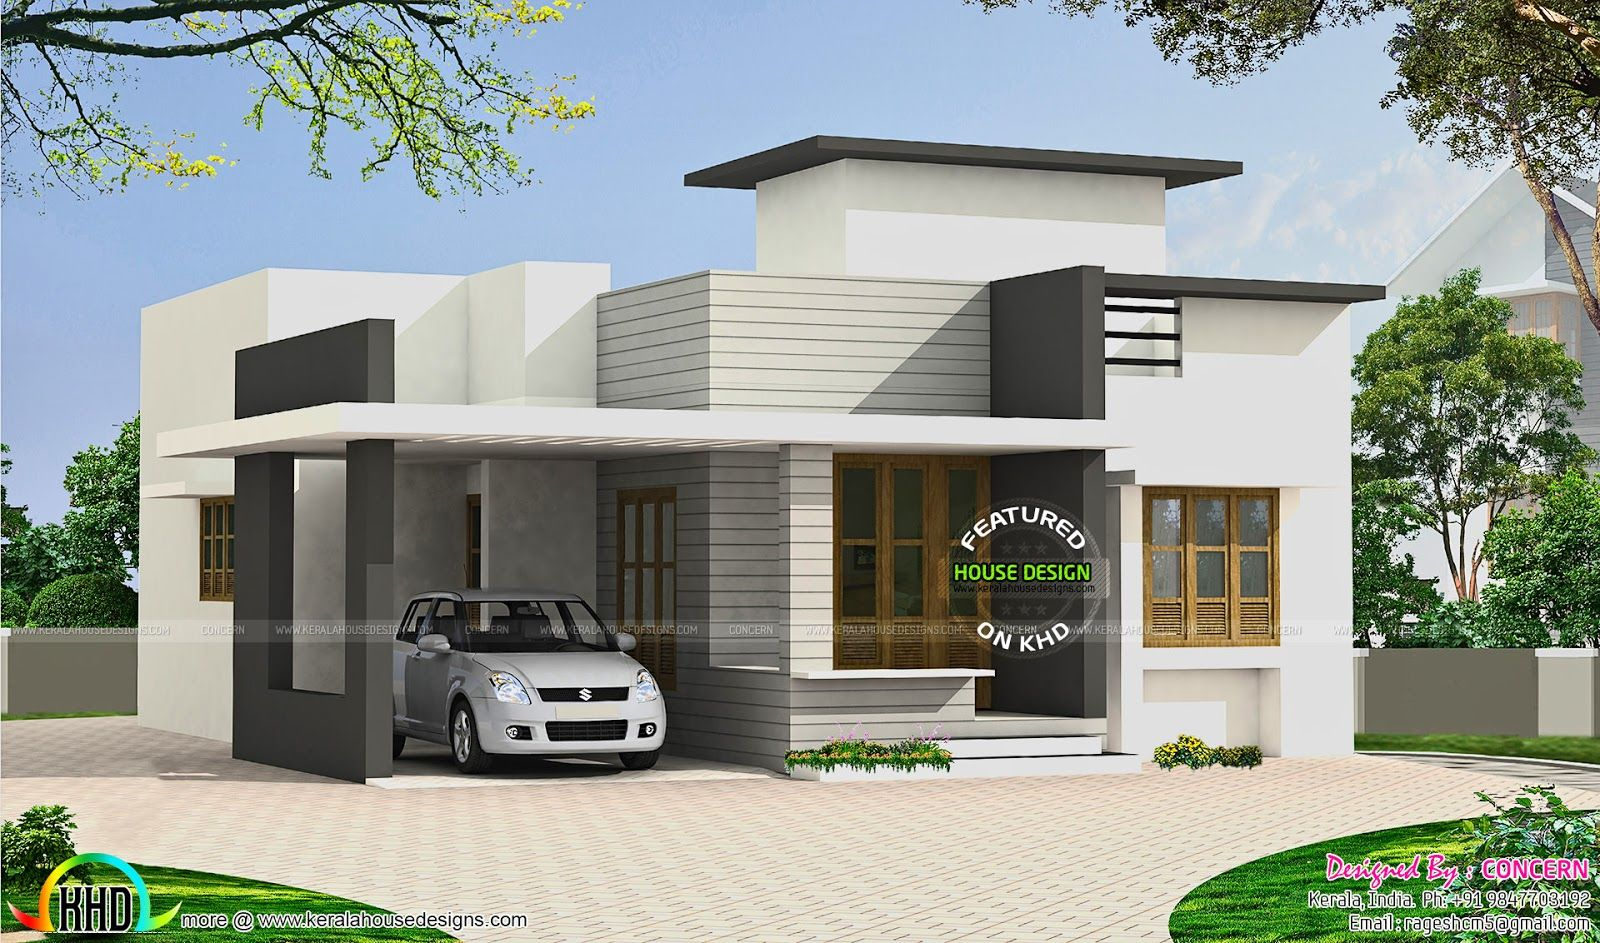 Image result for parking roof design in single floor for House designs kerala style low cost